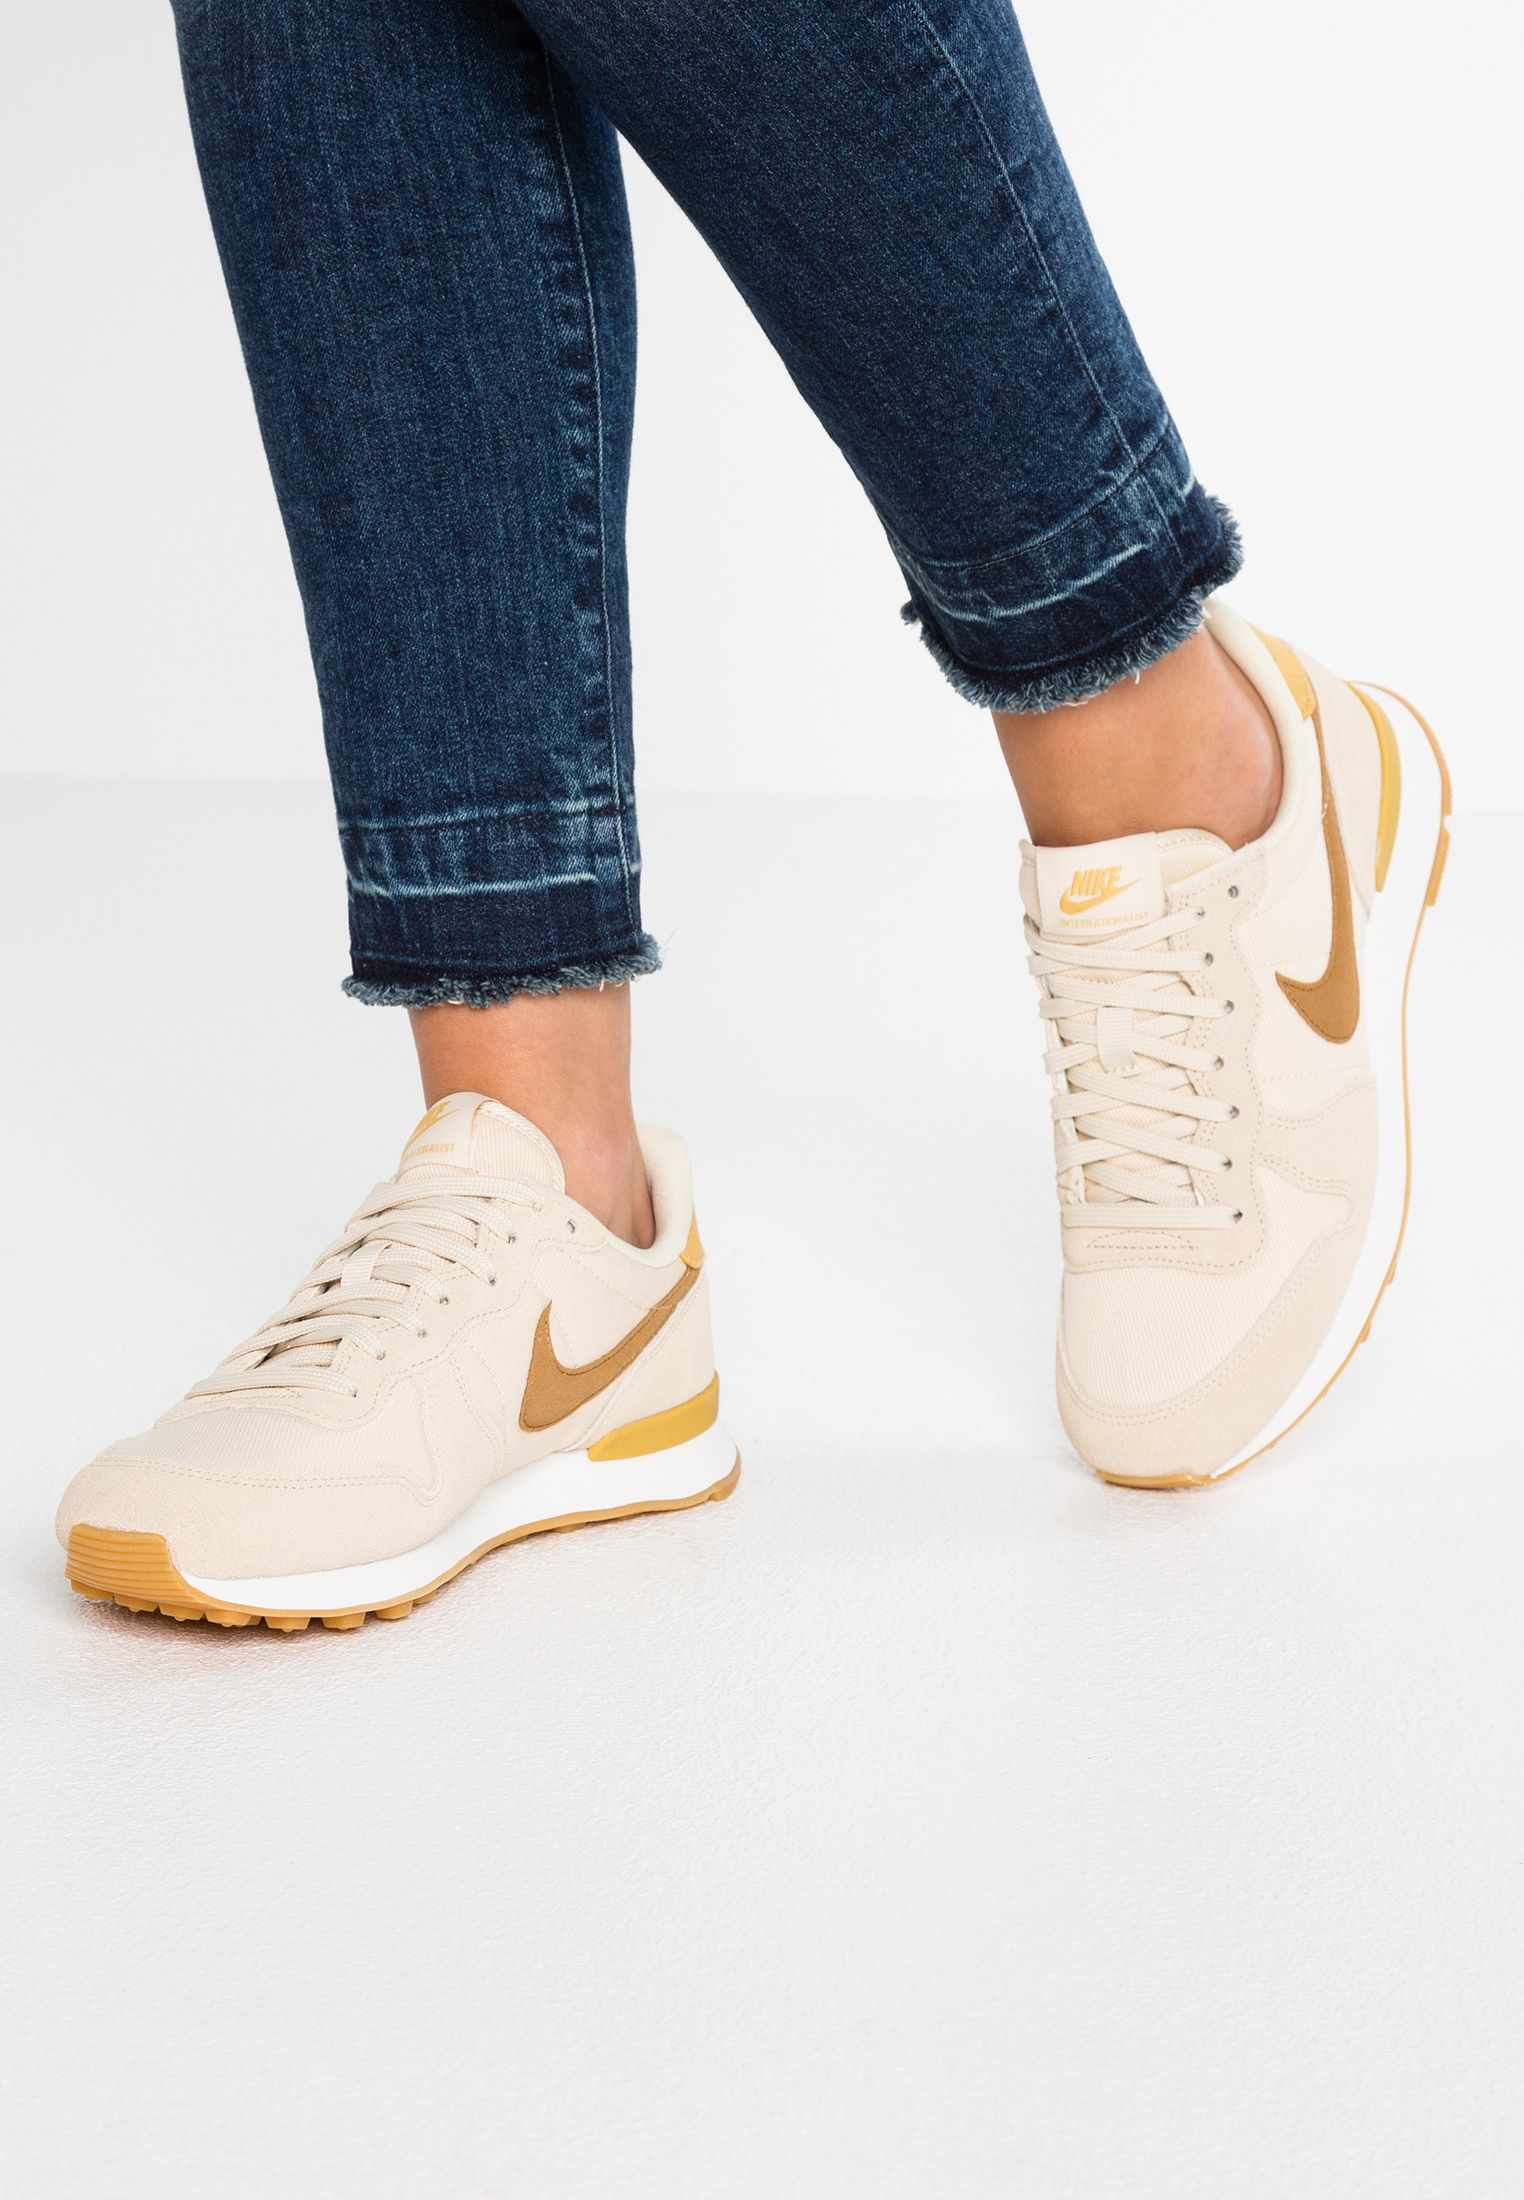 chaussure fille 12 ans nike